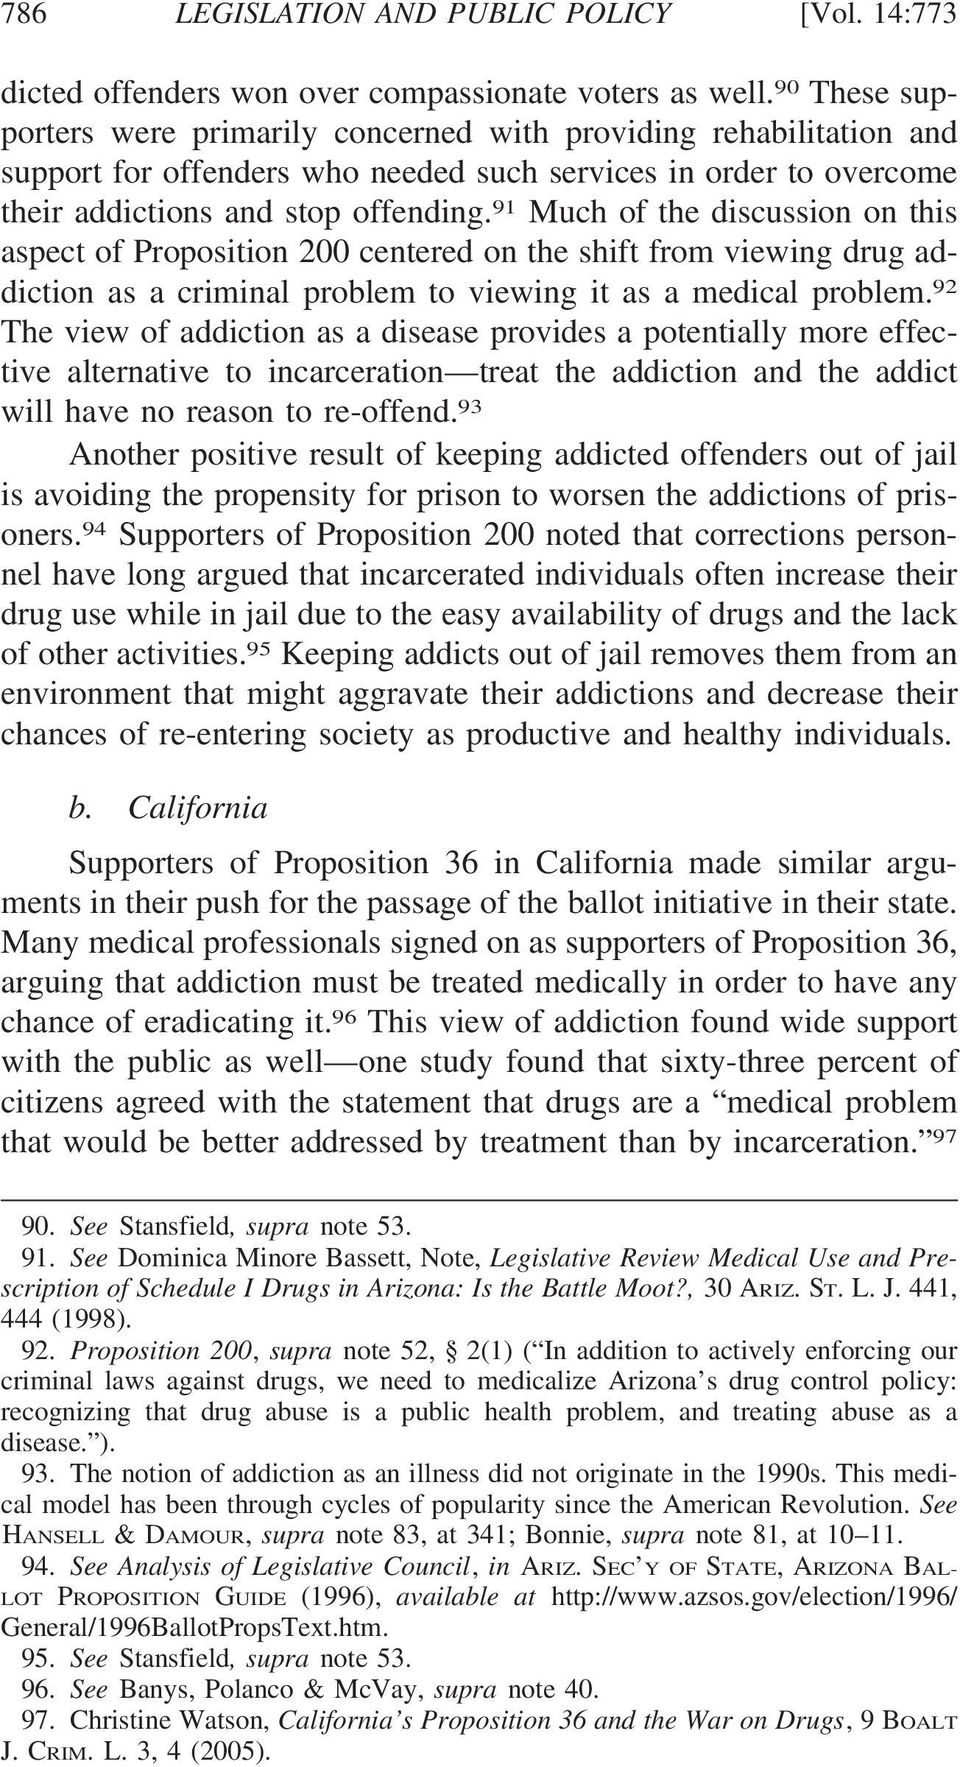 91 Much of the discussion on this aspect of Proposition 200 centered on the shift from viewing drug addiction as a criminal problem to viewing it as a medical problem.